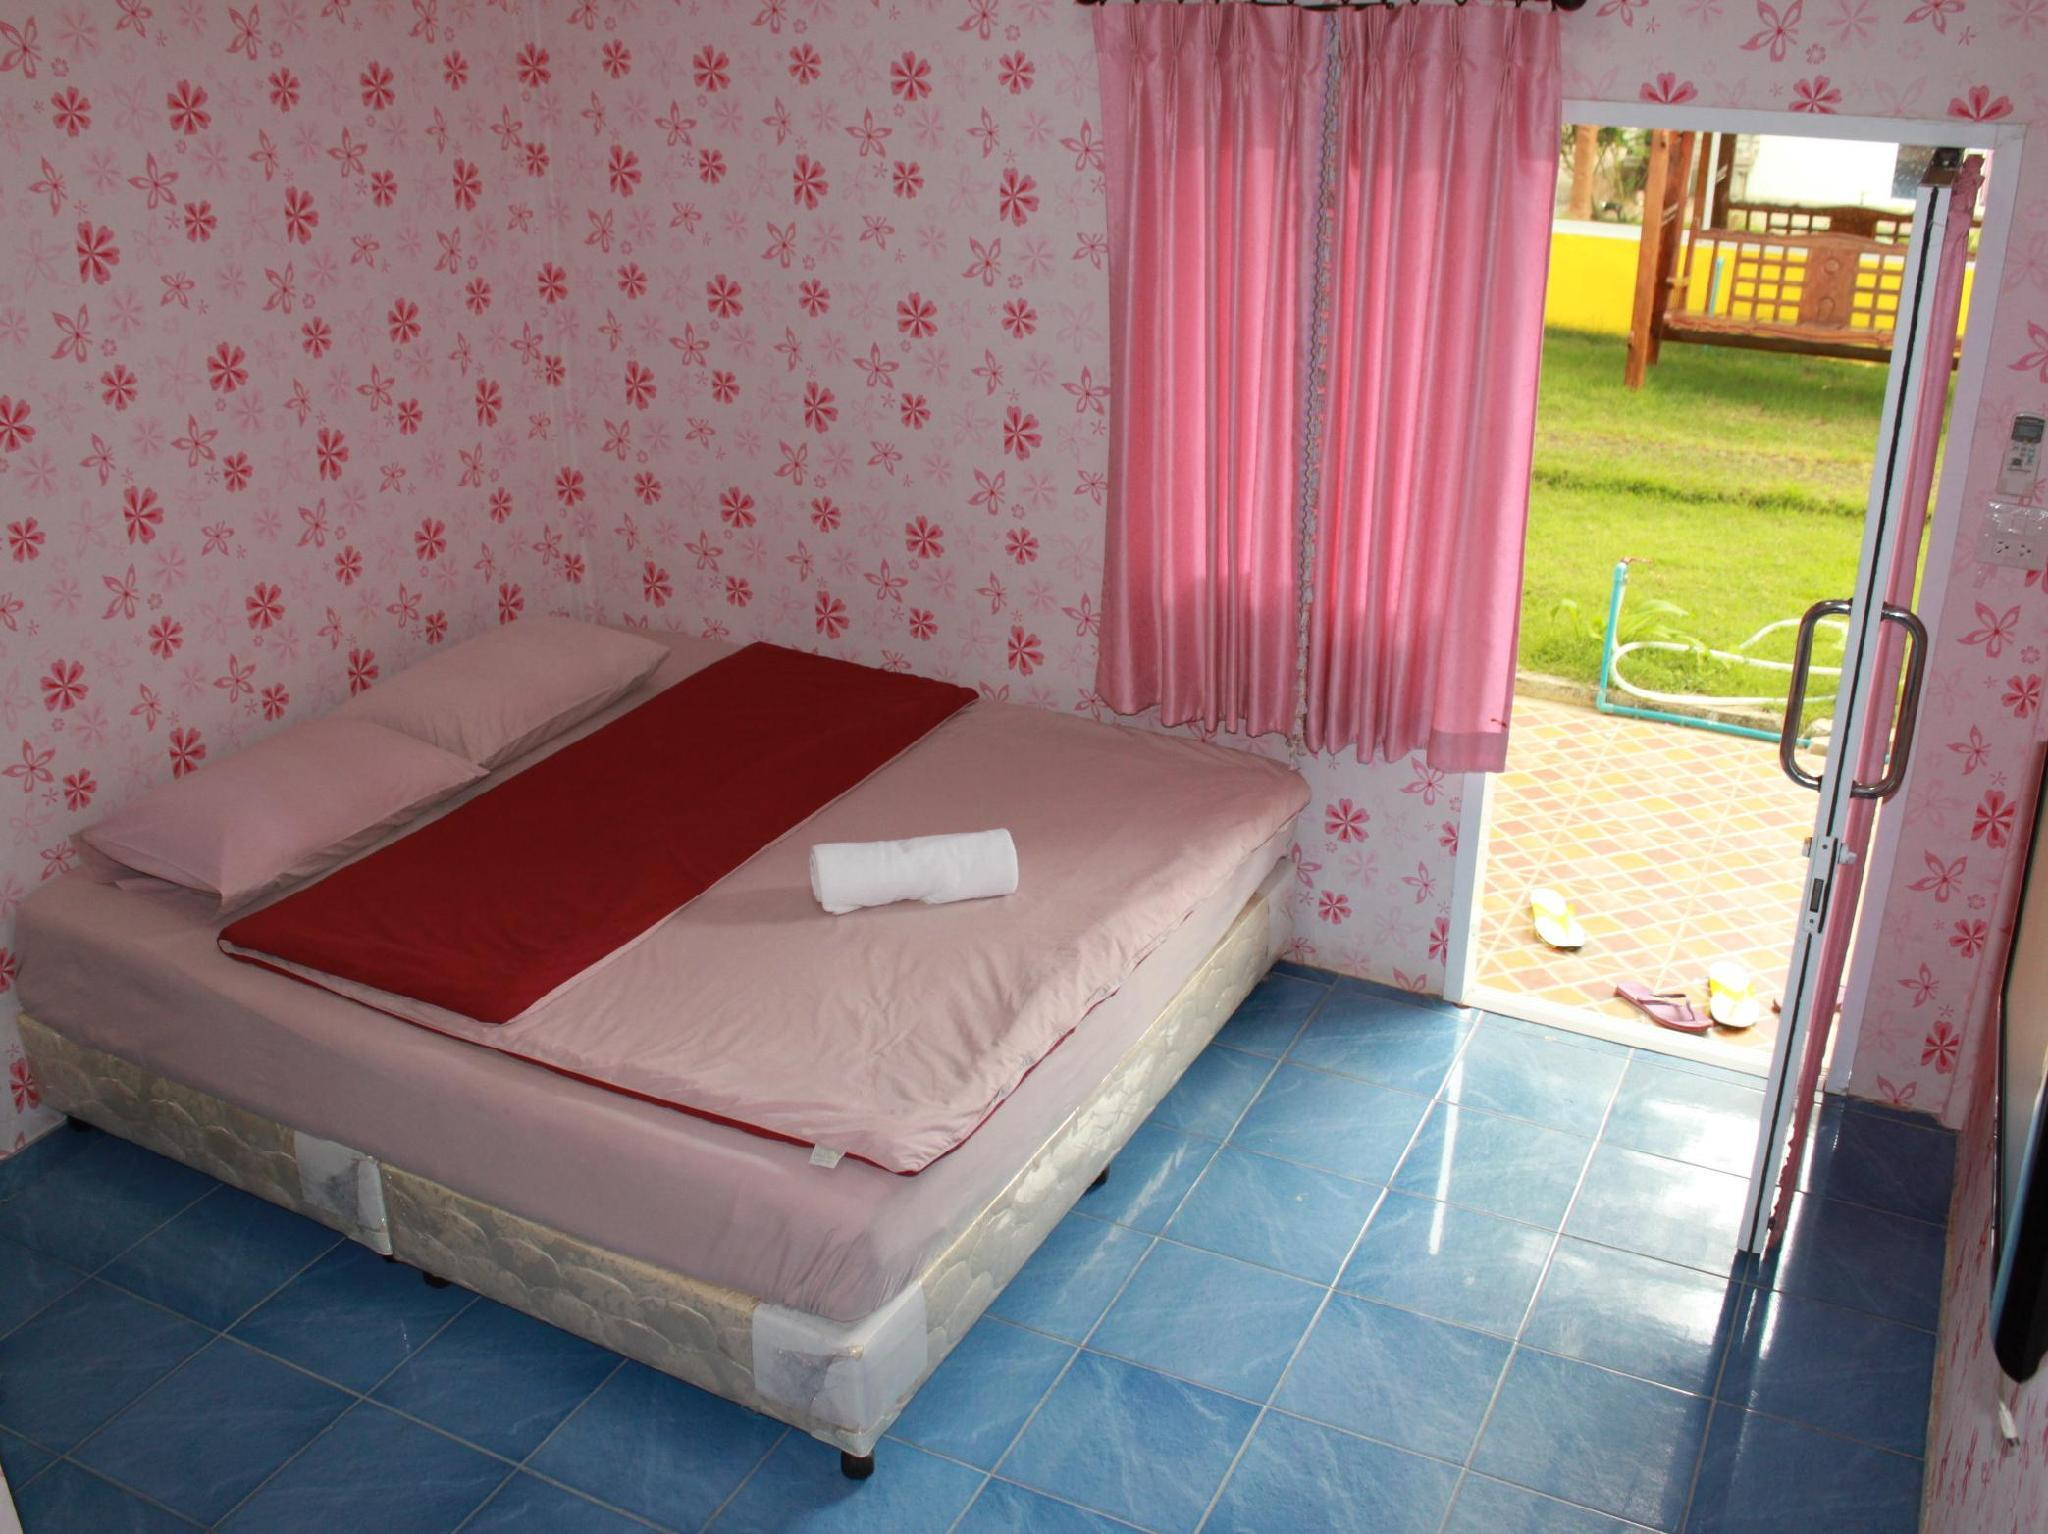 Standard Room King Bed for 2 Guests (A3)